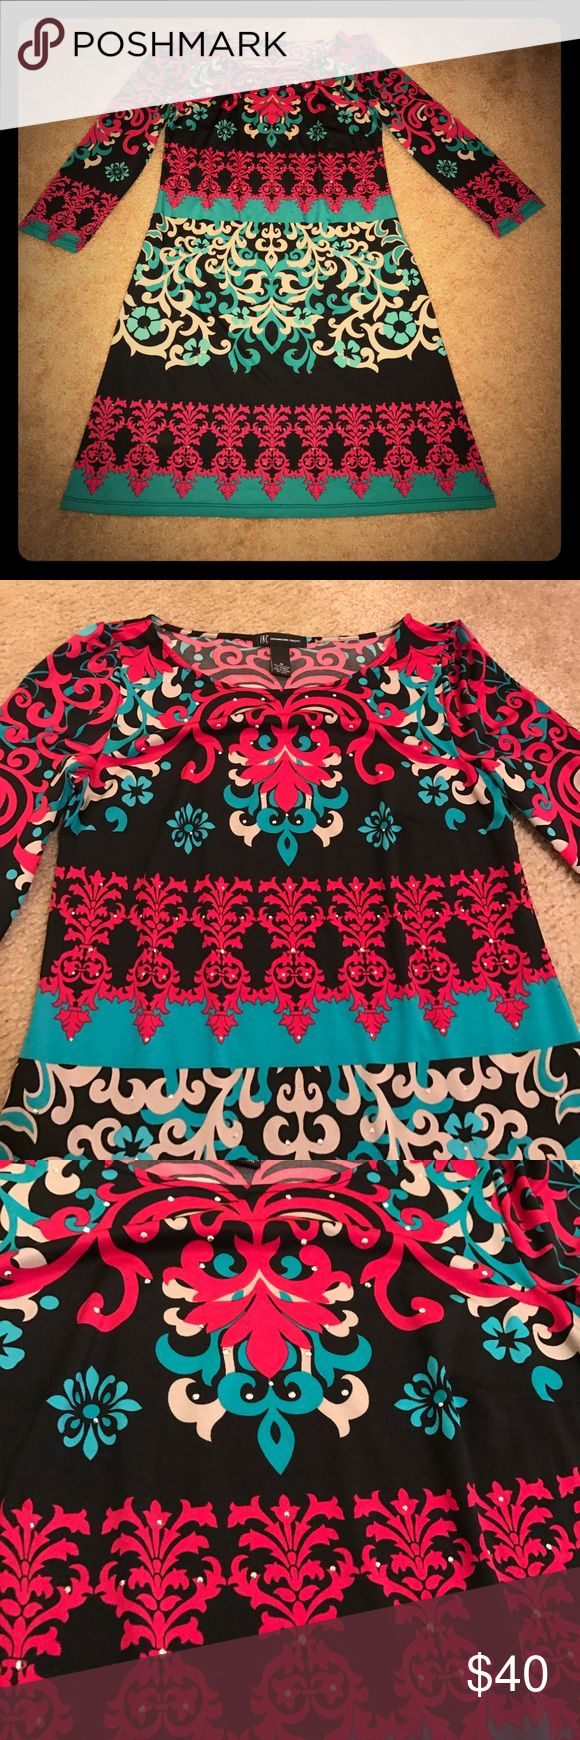 INC dress Gorgeous INC dress. Size M. Colors are black, turquoise, hot pink and beige. Features flashy beads on the front. This dress is perfect for summer and fall because it's lightweight and you can wear it with sandals or knee high boots !! EUC INC International Concepts Dresses